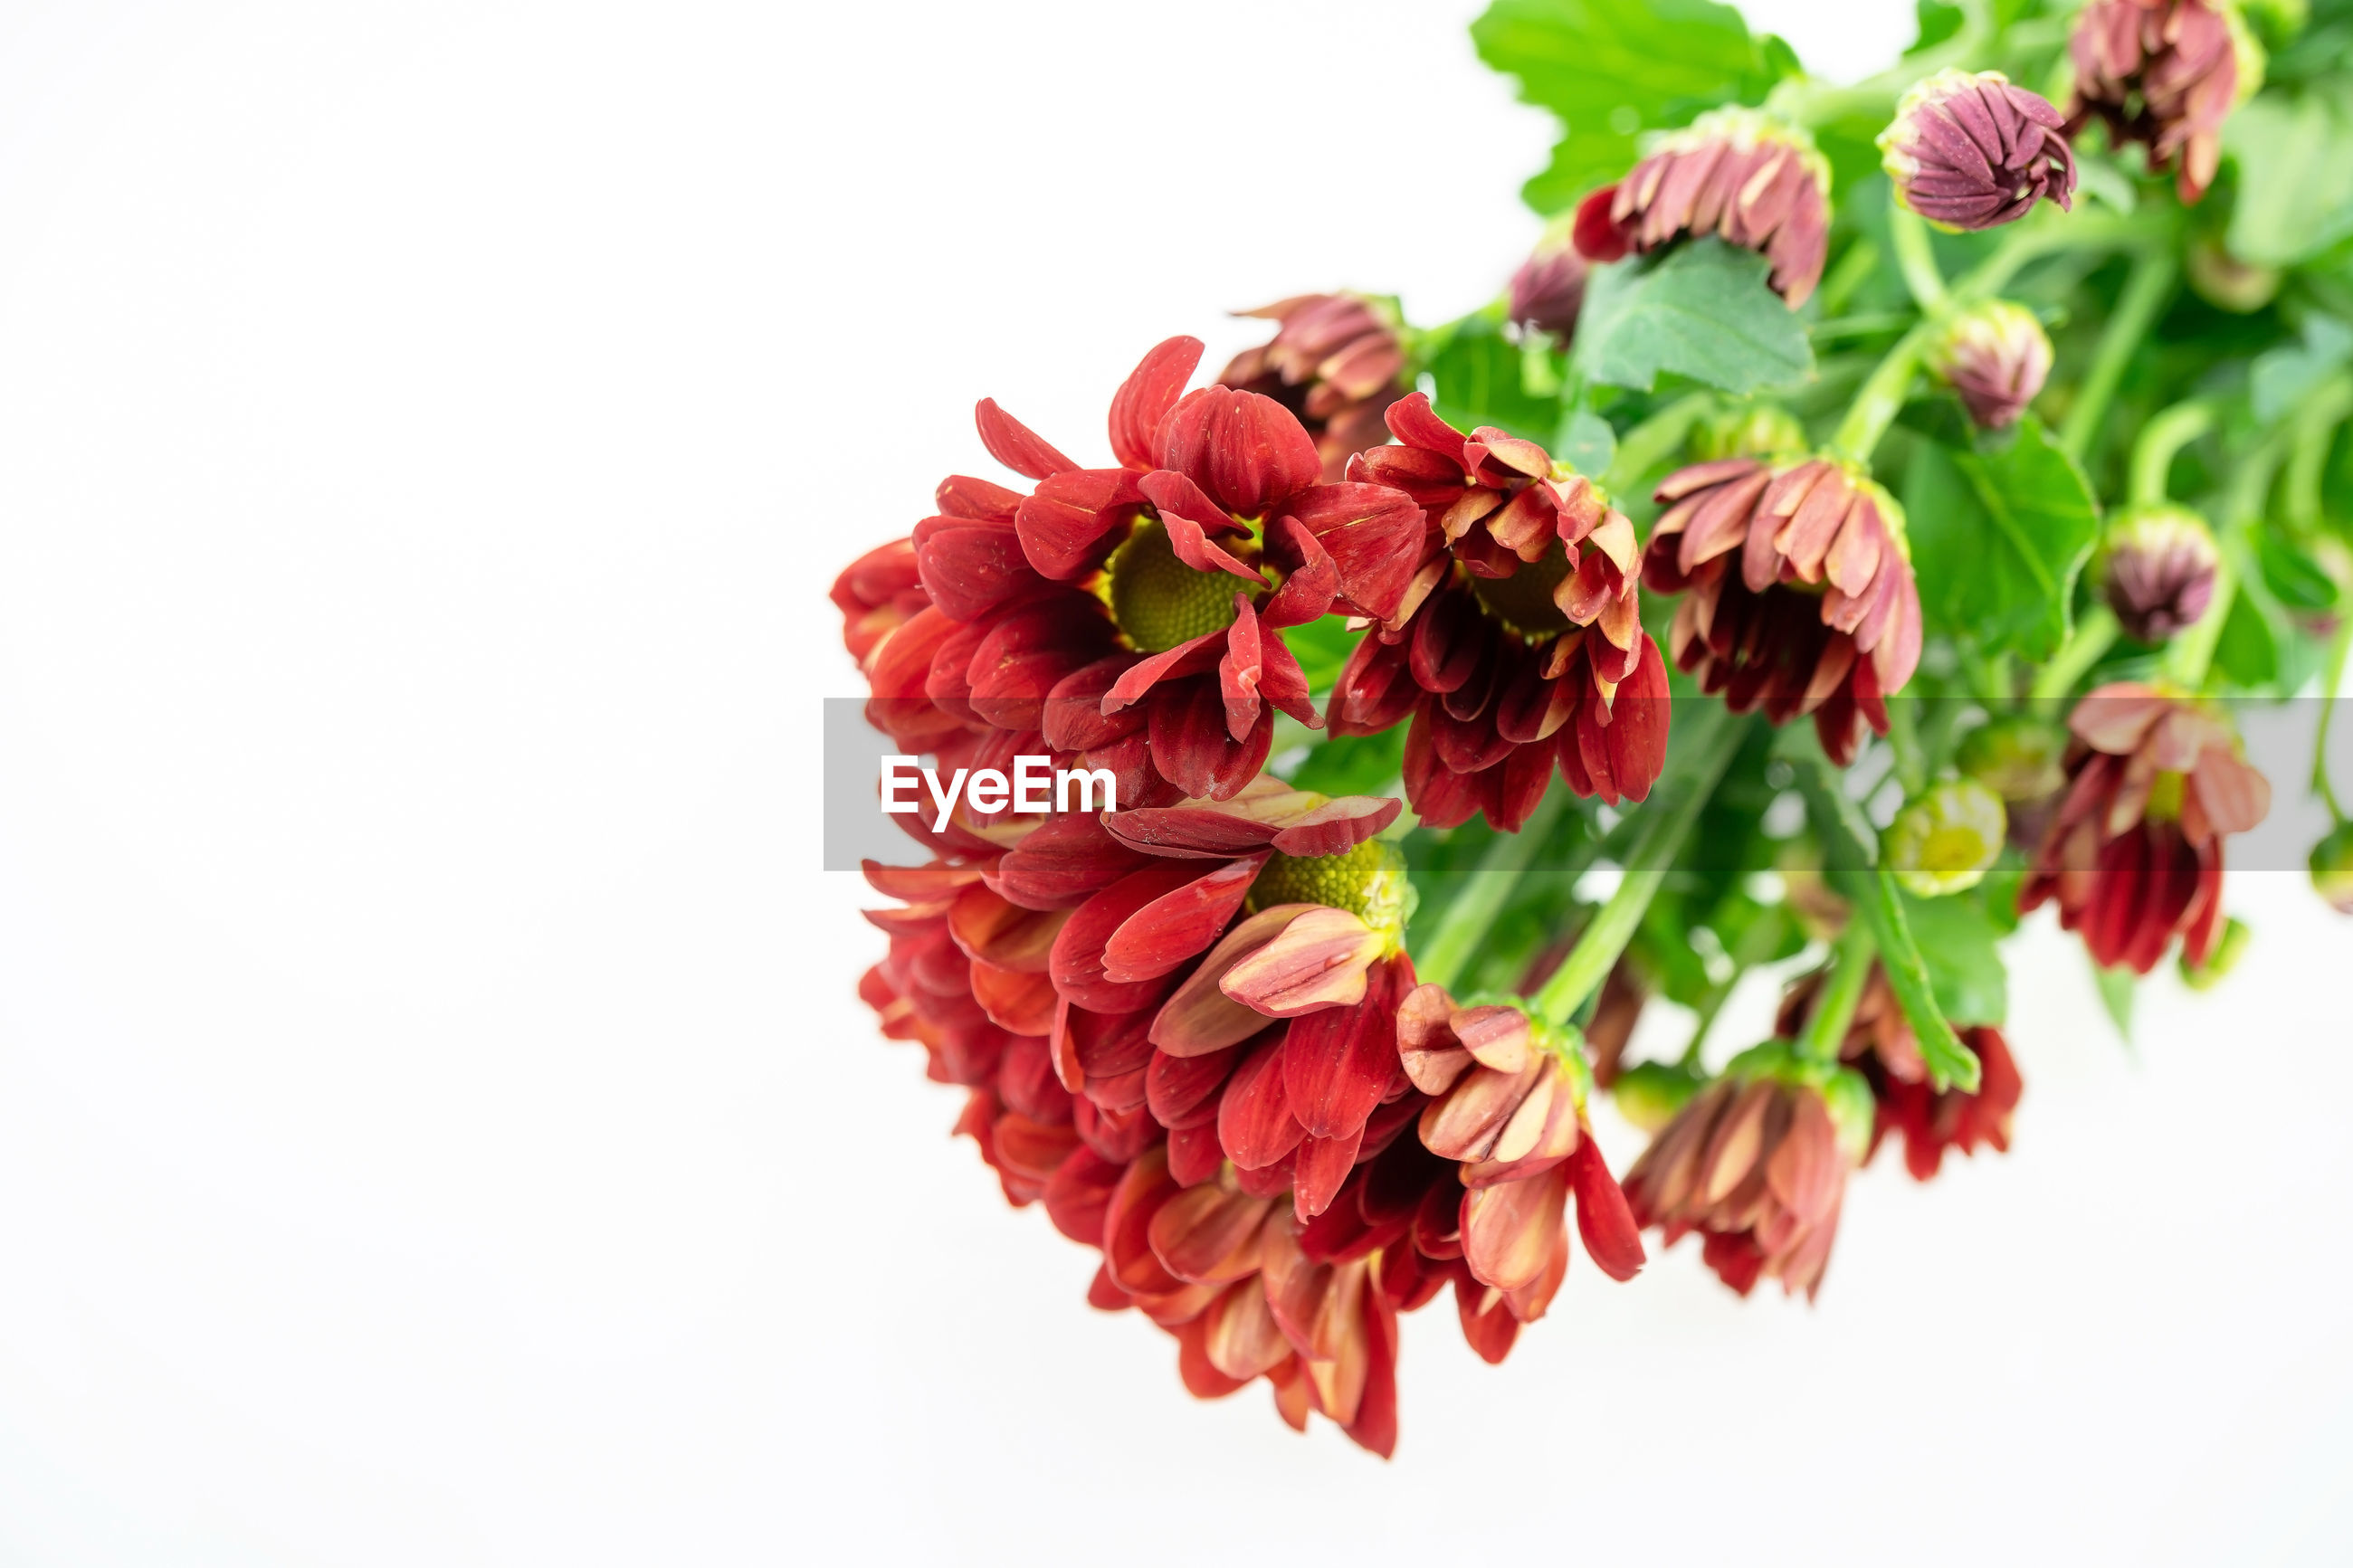 HIGH ANGLE VIEW OF RED ROSE BOUQUET AGAINST WHITE BACKGROUND